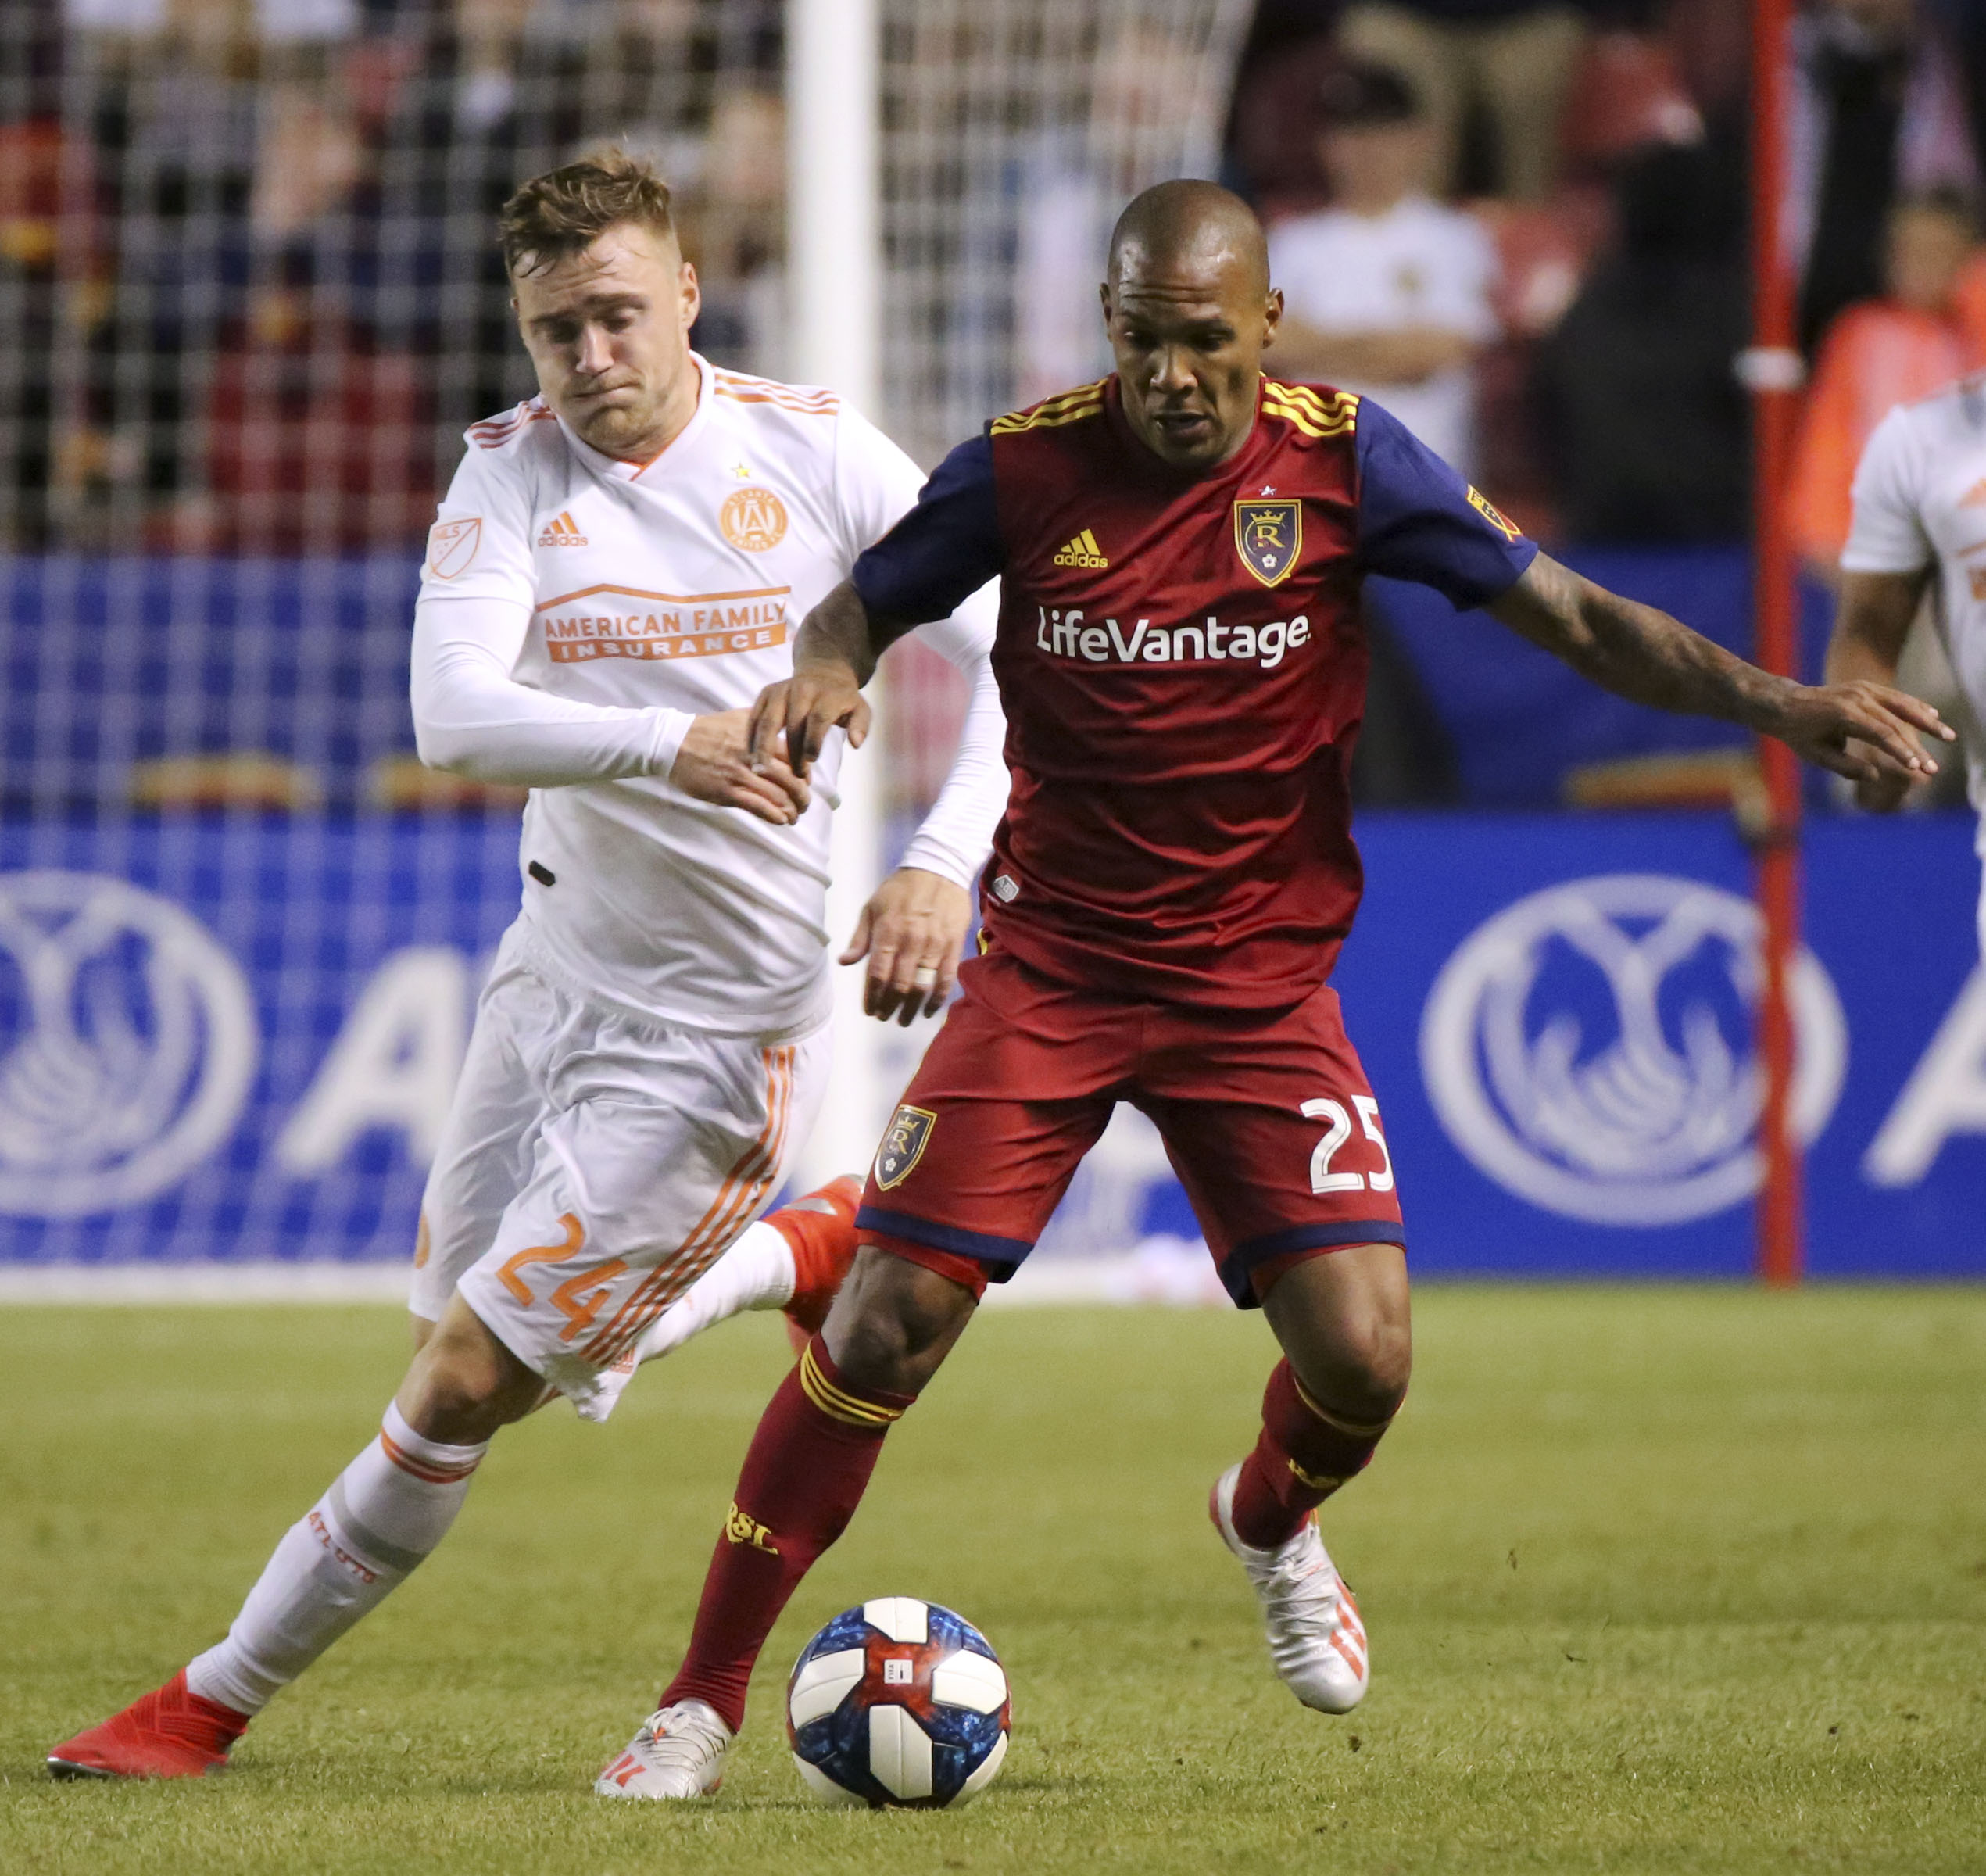 Atlanta United defender Julian Gressel (24) and Real Salt Lake midfielder Everton Luiz (25) fight for the ball during an MLS game at Rio Tinto Stadium in Sandy on Friday, May 24, 2019. Real Salt Lake won 2-1.